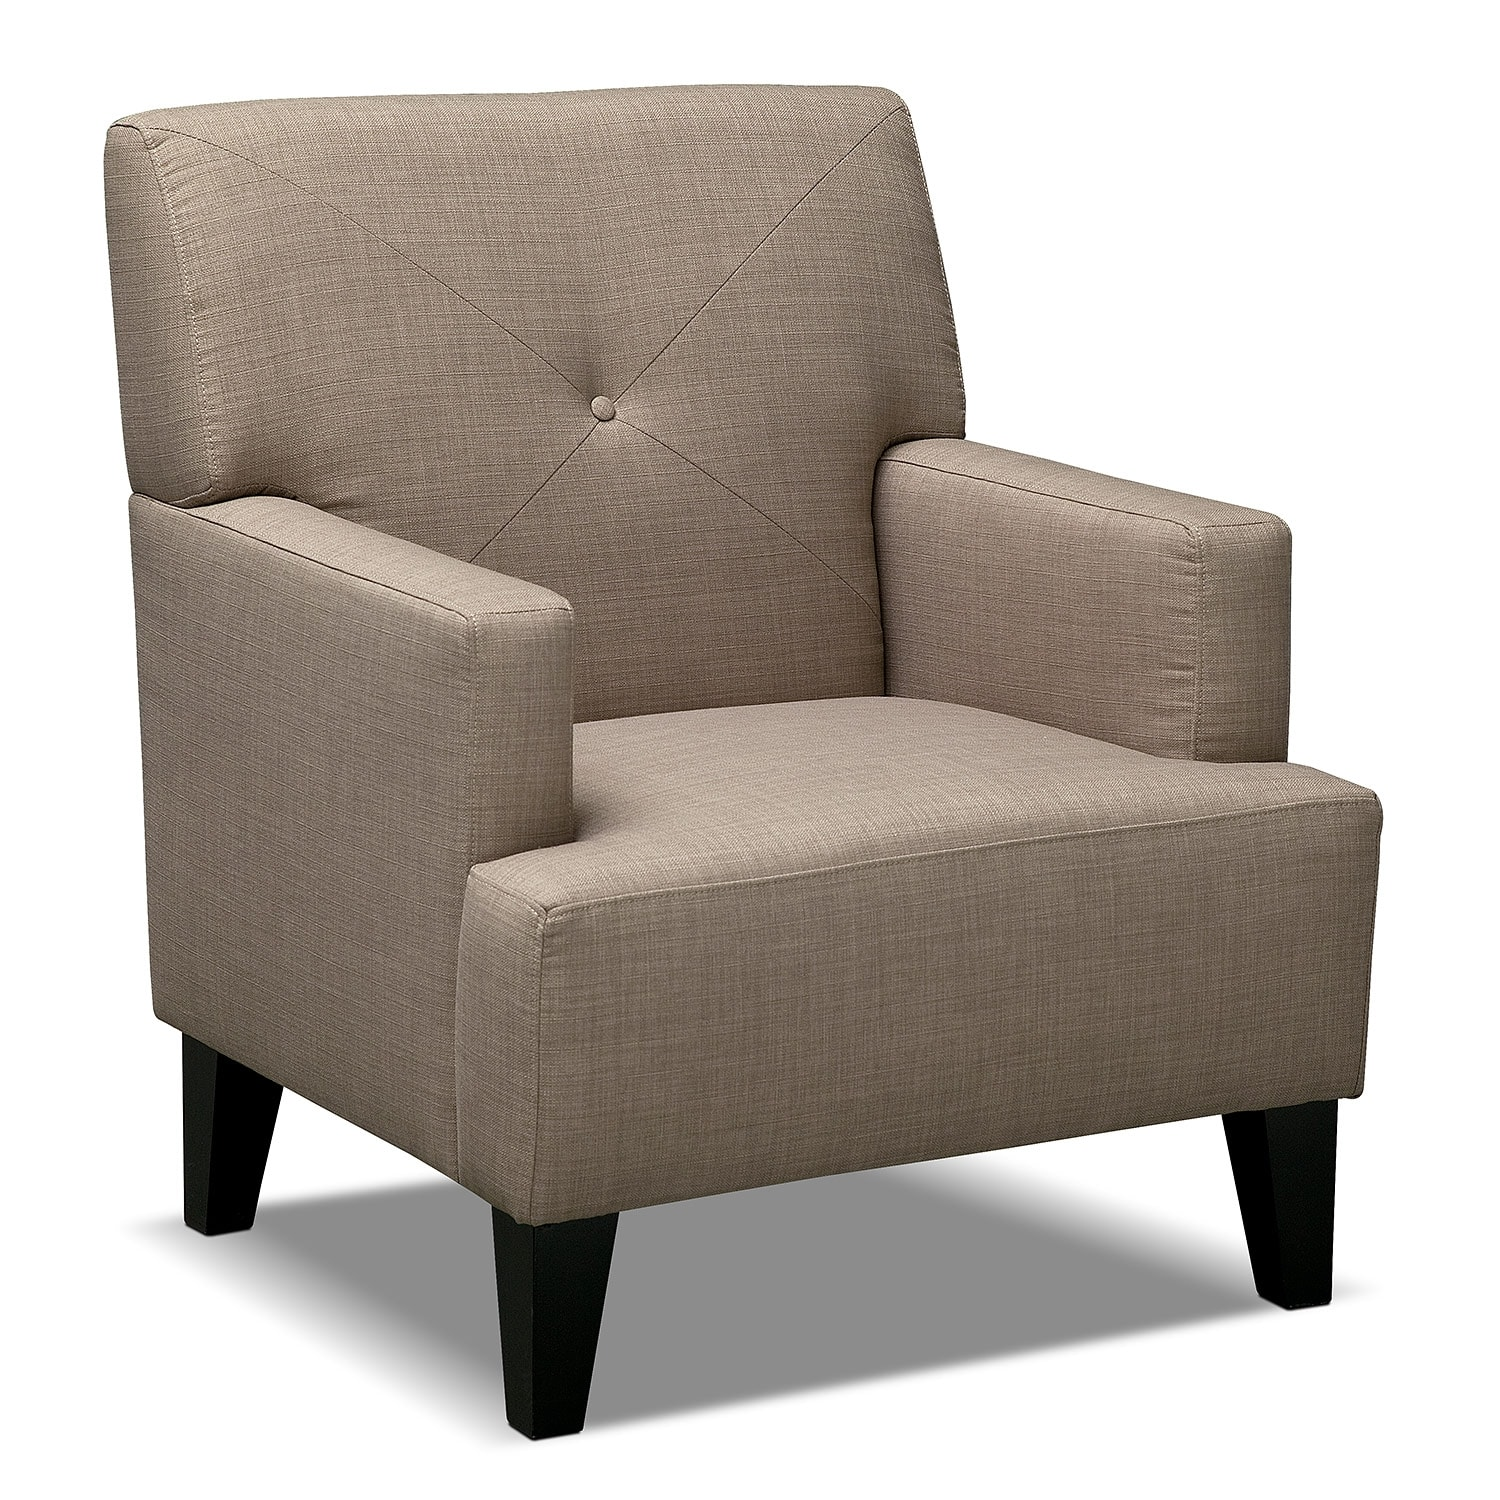 Avalon accent chair wheat american signature furniture for Signature furniture